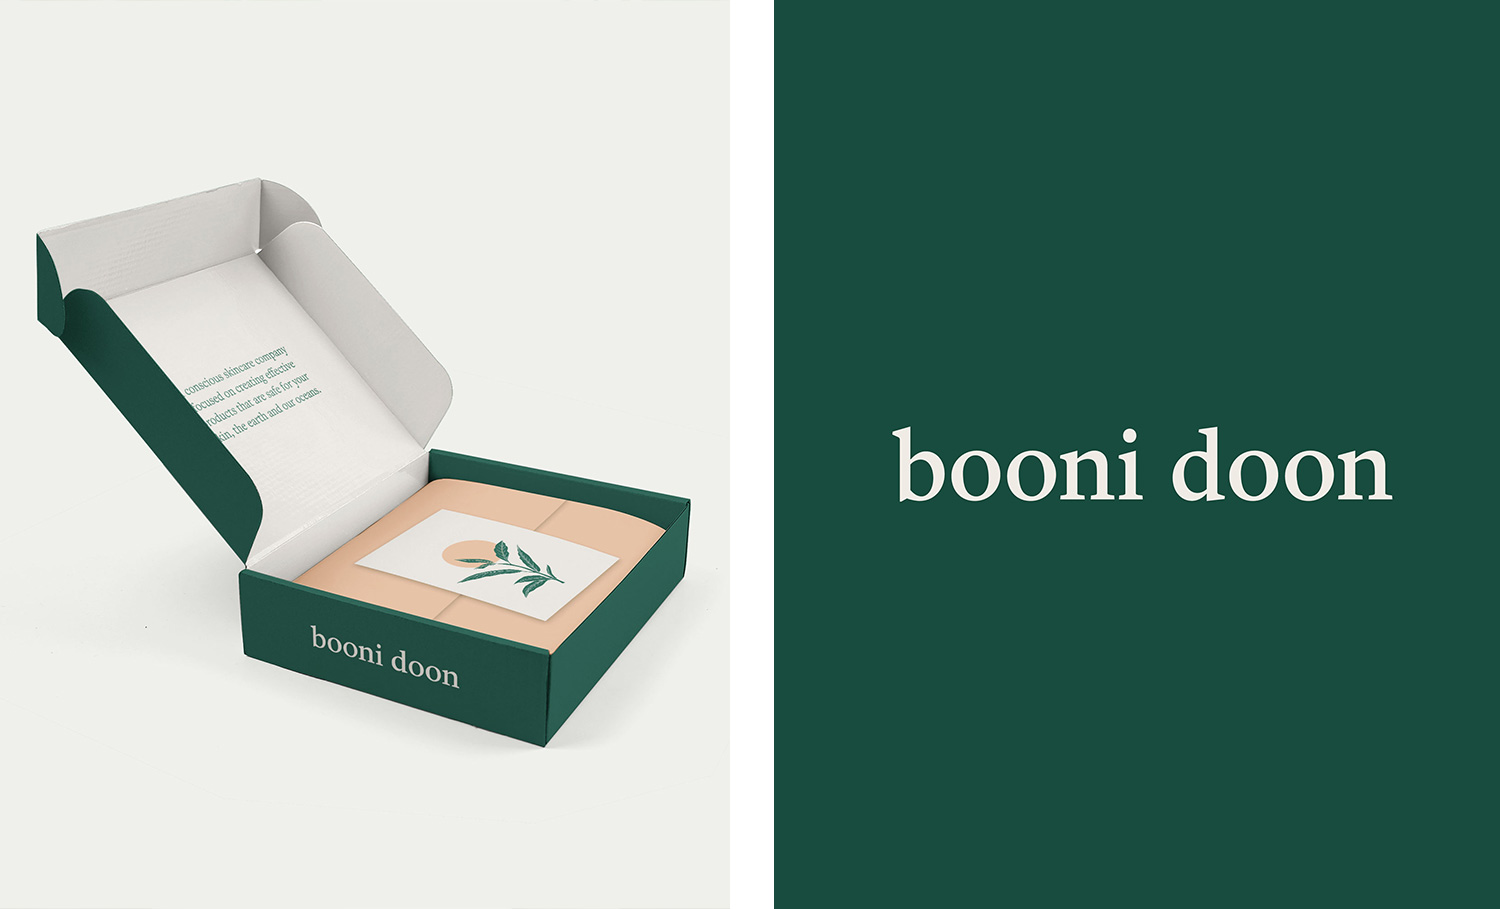 booni doon e-commerce packaging and logo